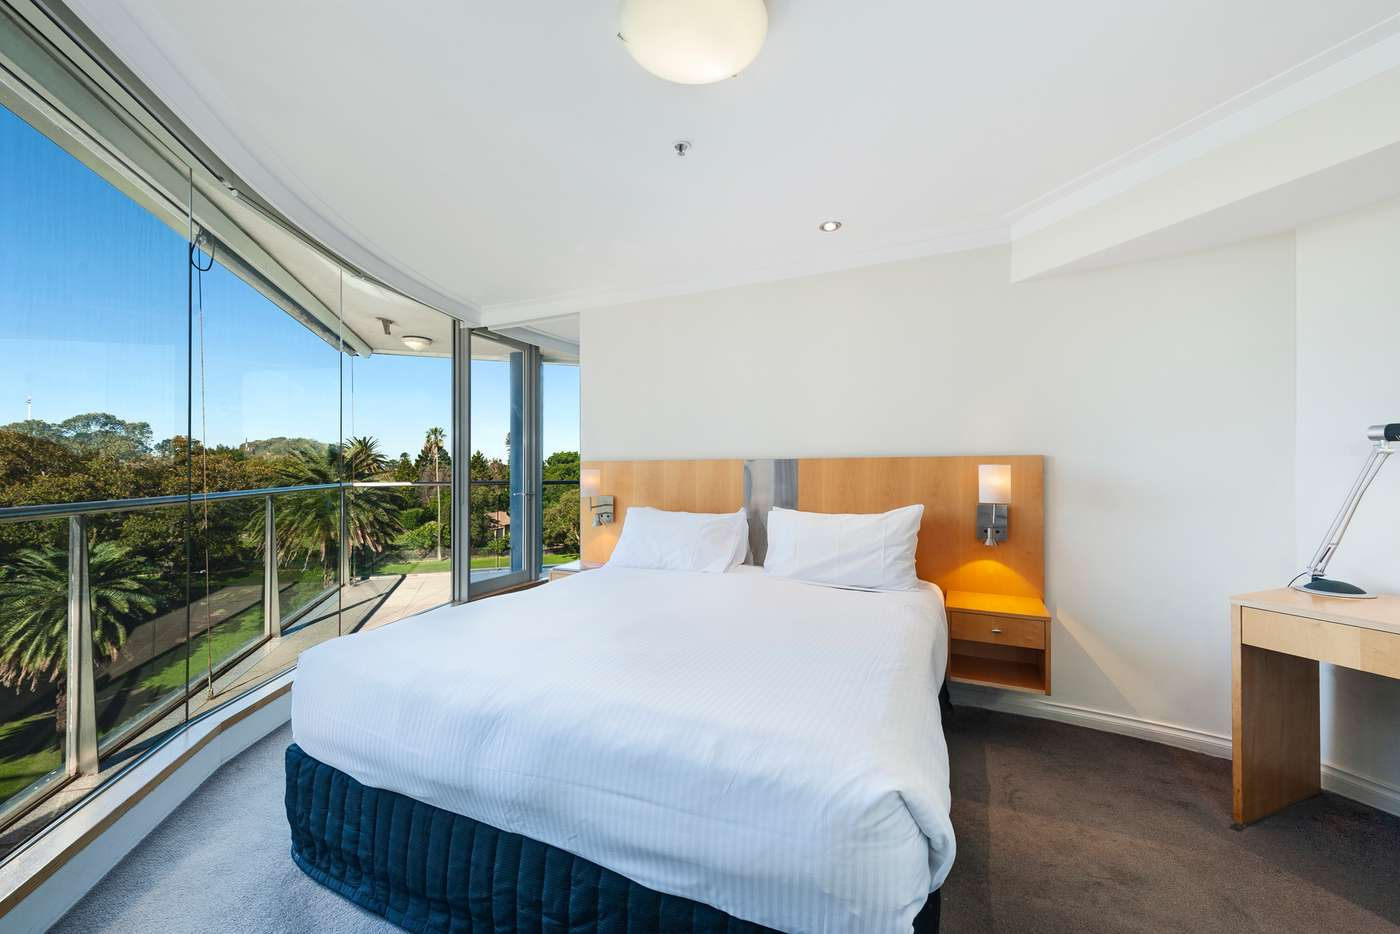 Fifth view of Homely apartment listing, 916/61 Macquarie Street, Sydney NSW 2000